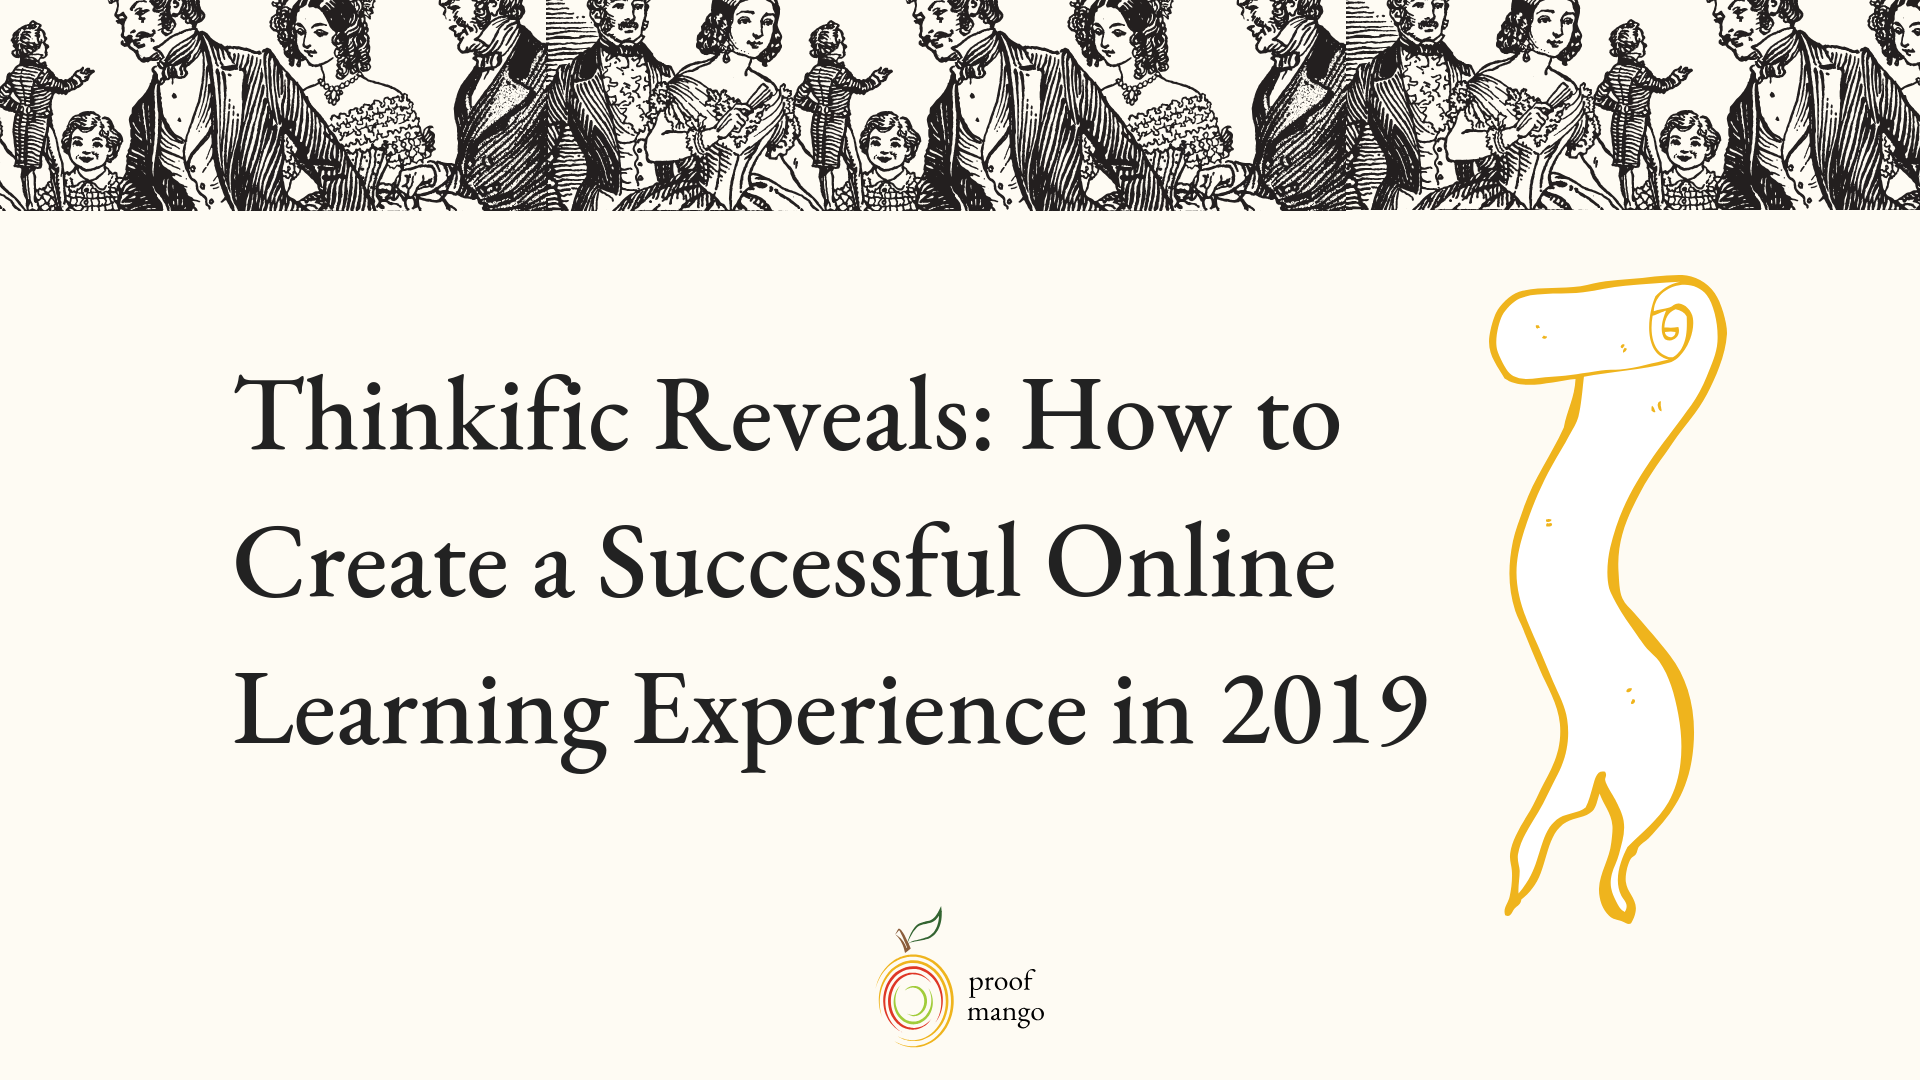 Thinkific-Reveals_-How-to-Create-a-Successful-Online-Learning-Experience-in-2019